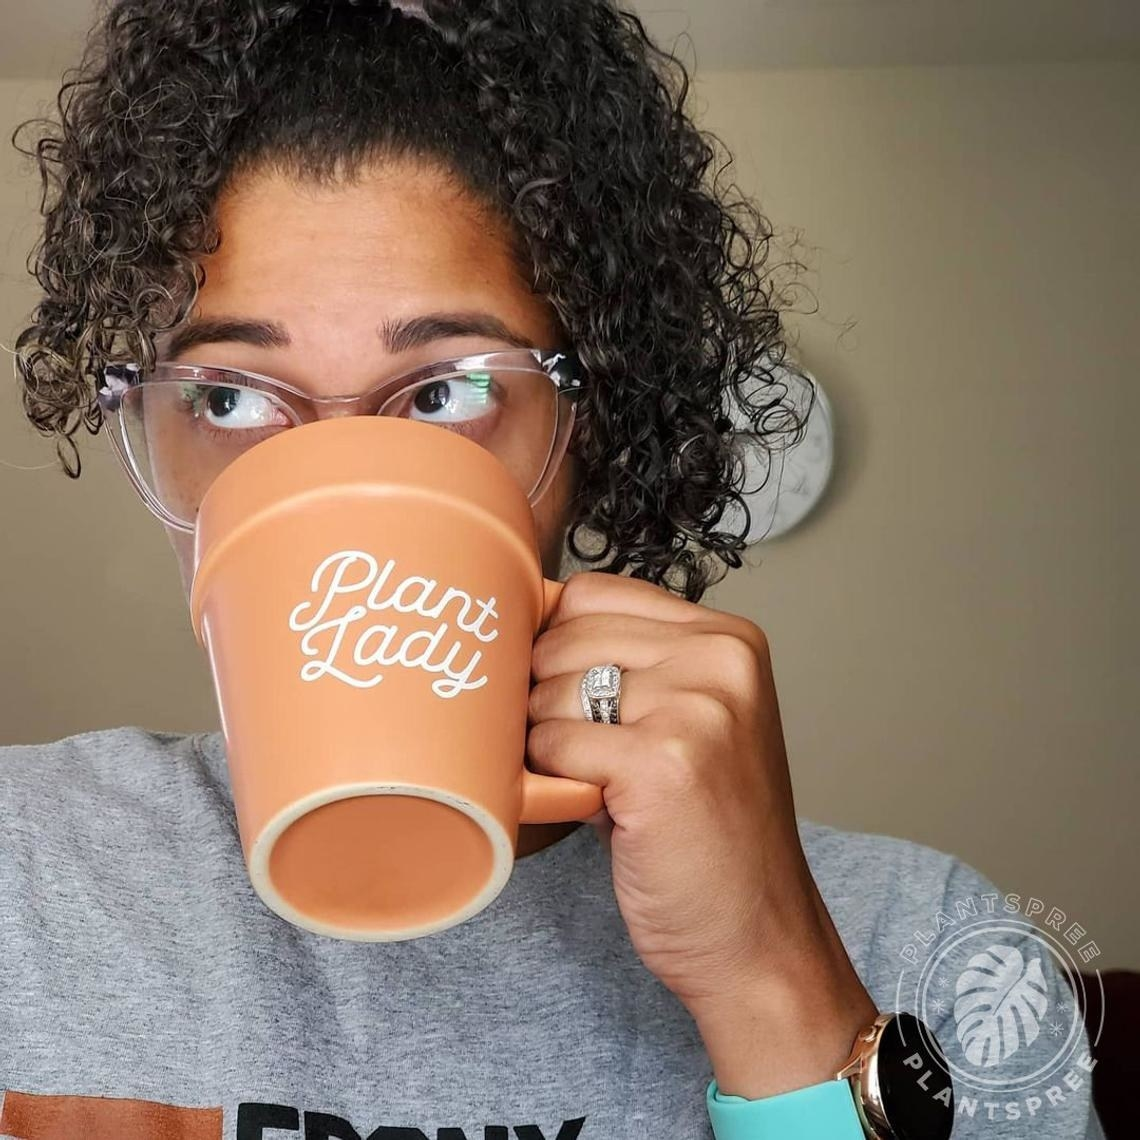 A person drinking out the plant lady mug